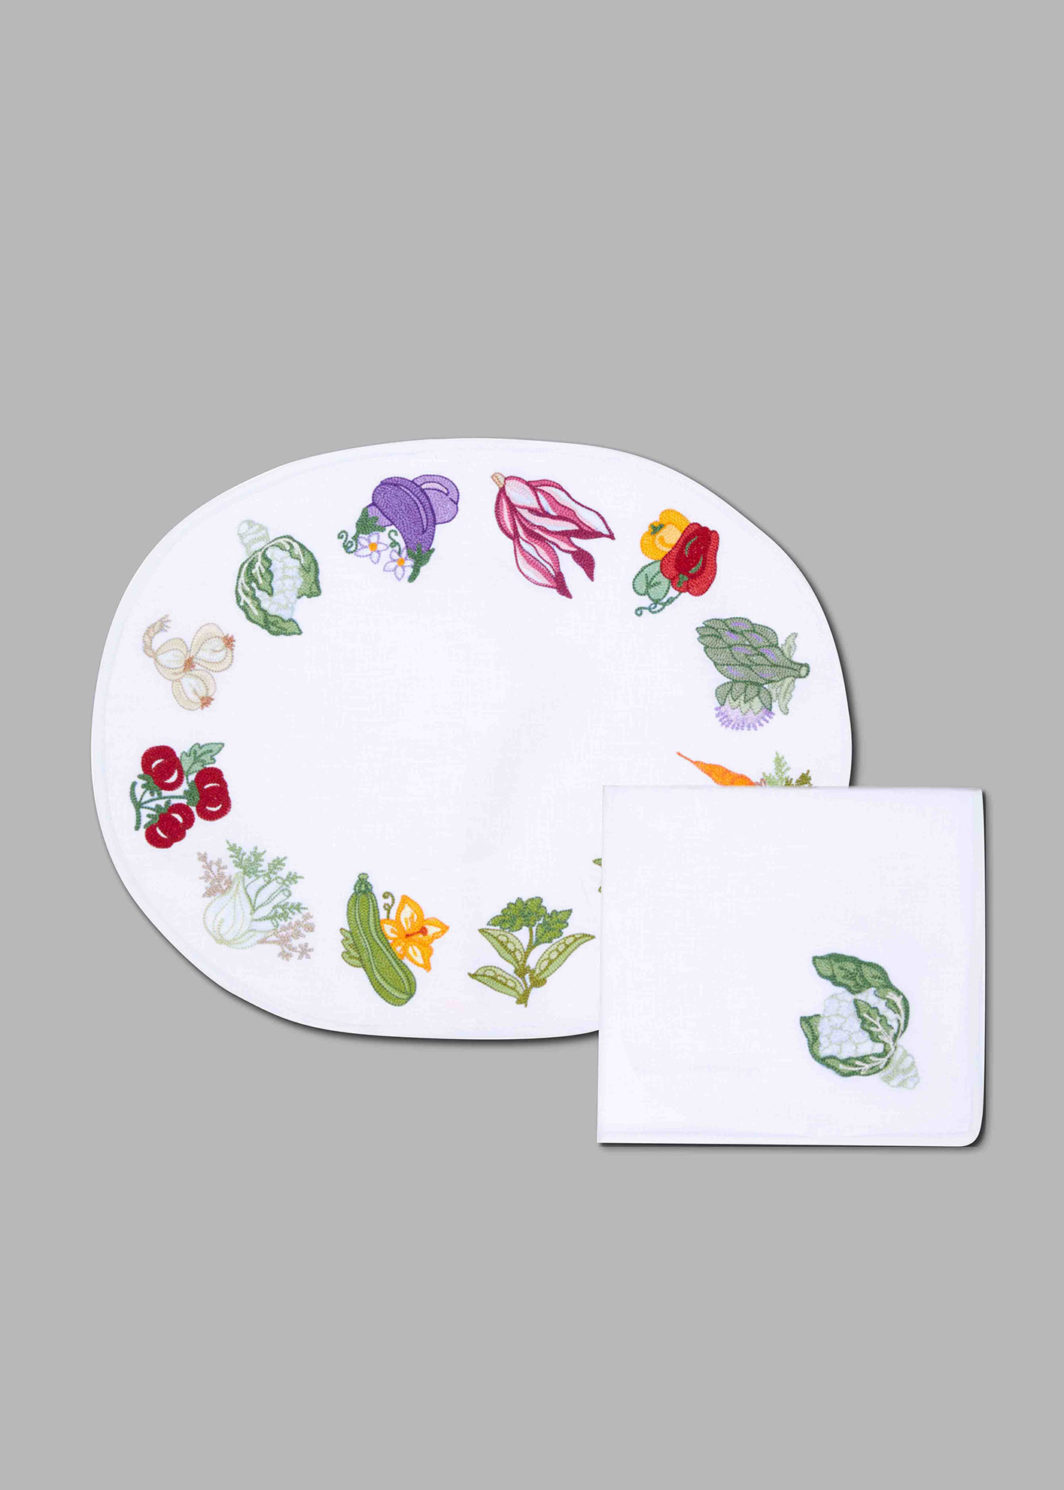 VEGETABLES PLACEMAT SET OF 2